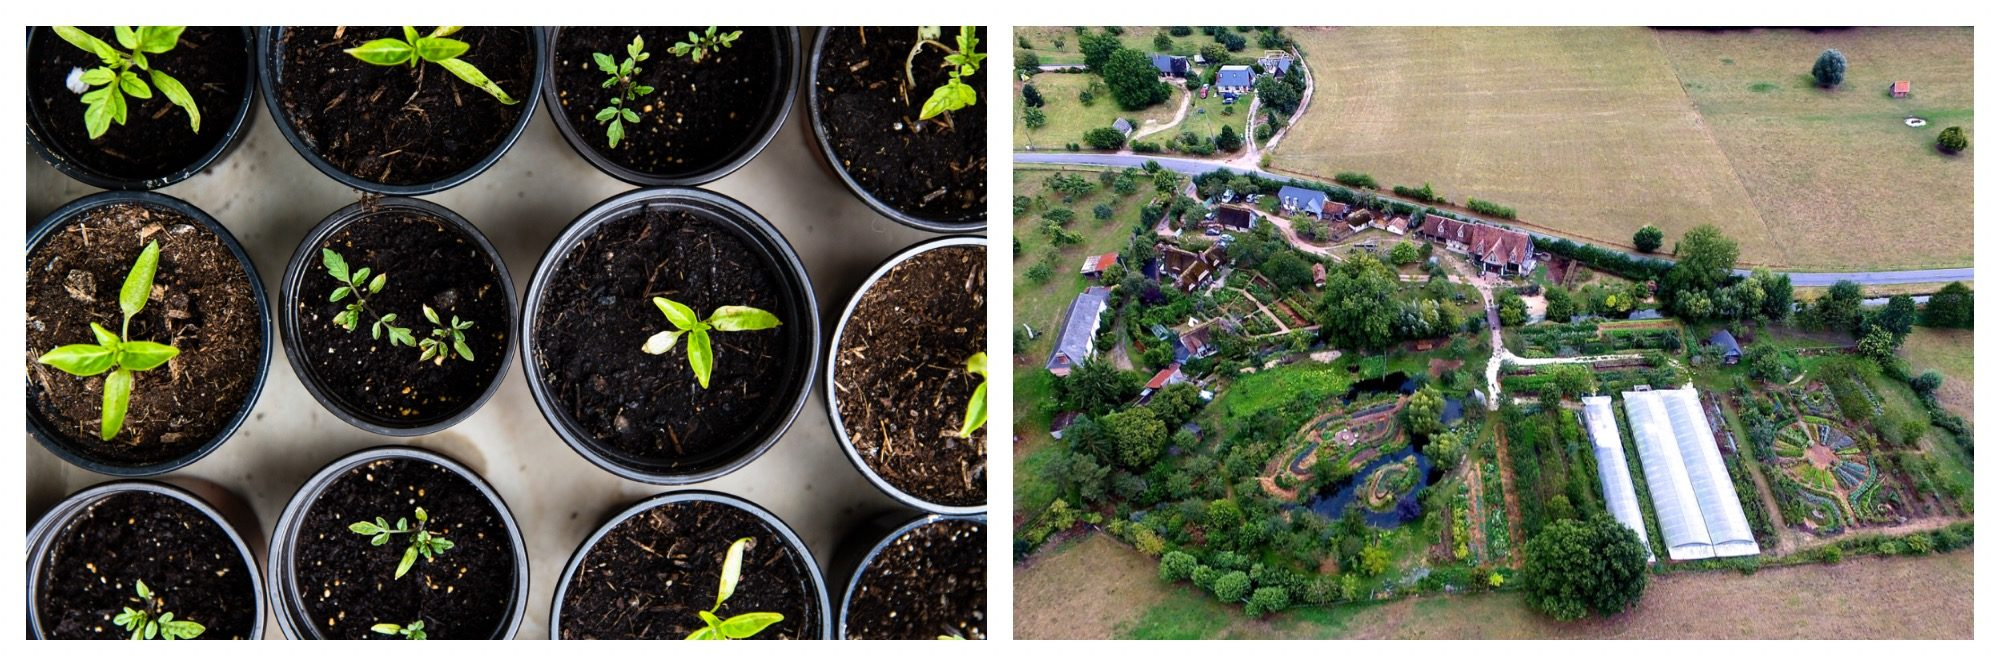 Seedlings being prepared for permaculture (left), like on this farm in France (right).